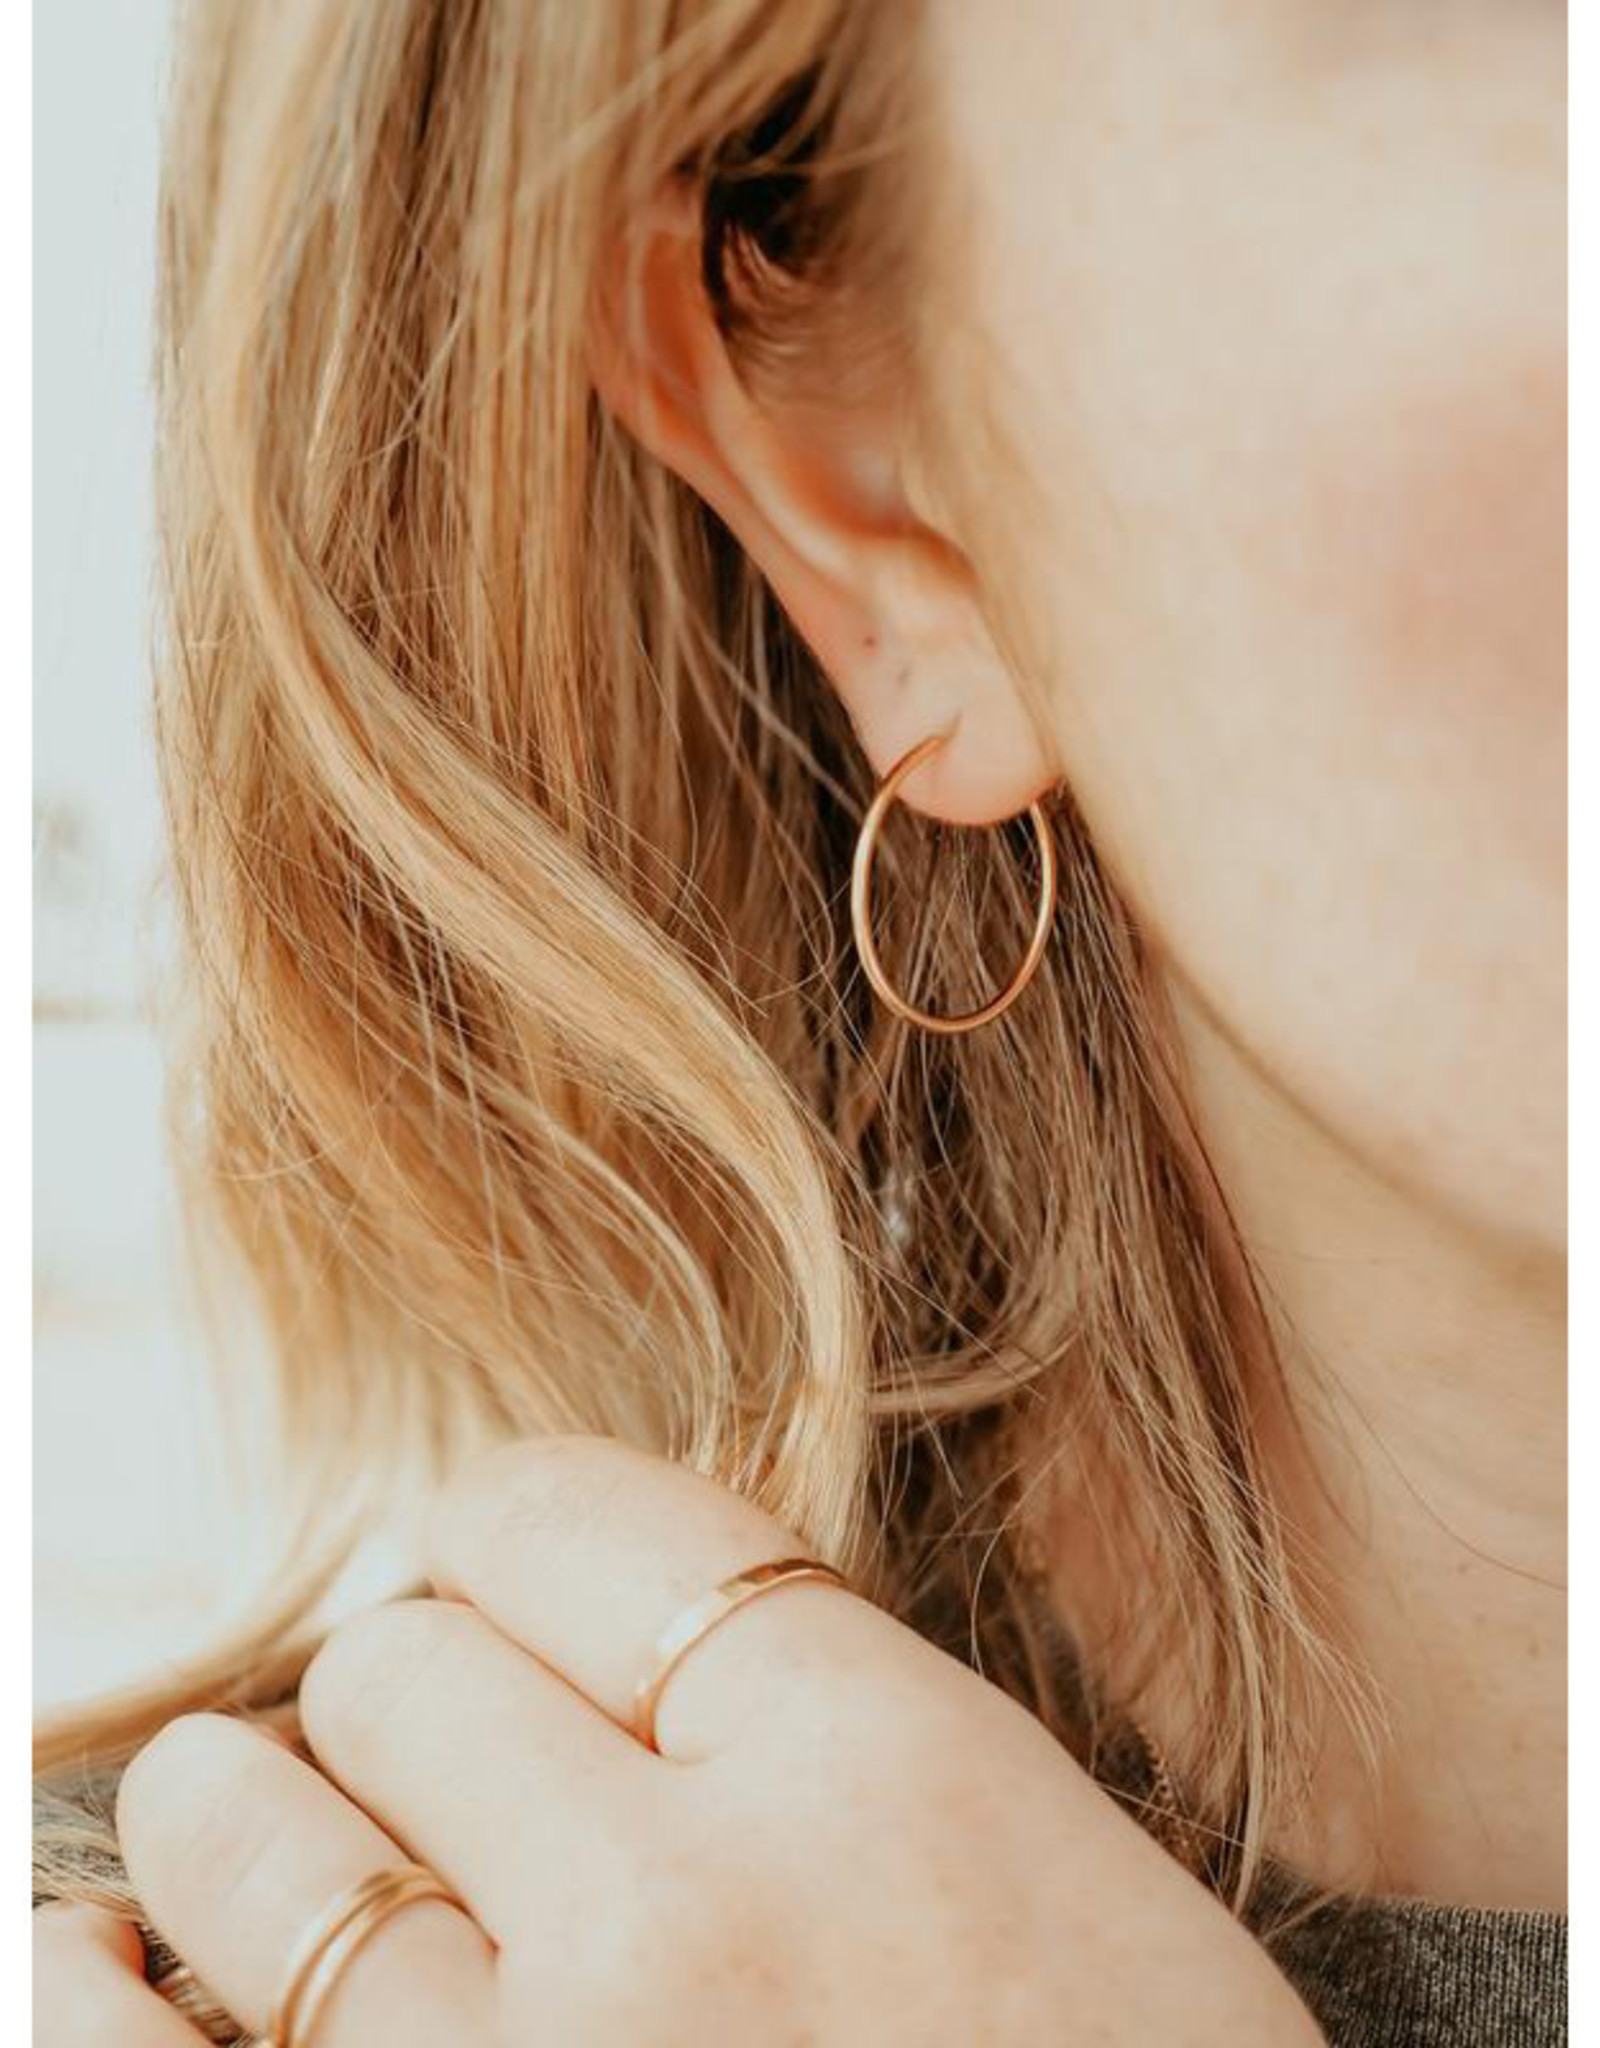 Hart + Stone Silver Ibex Hoops - Large